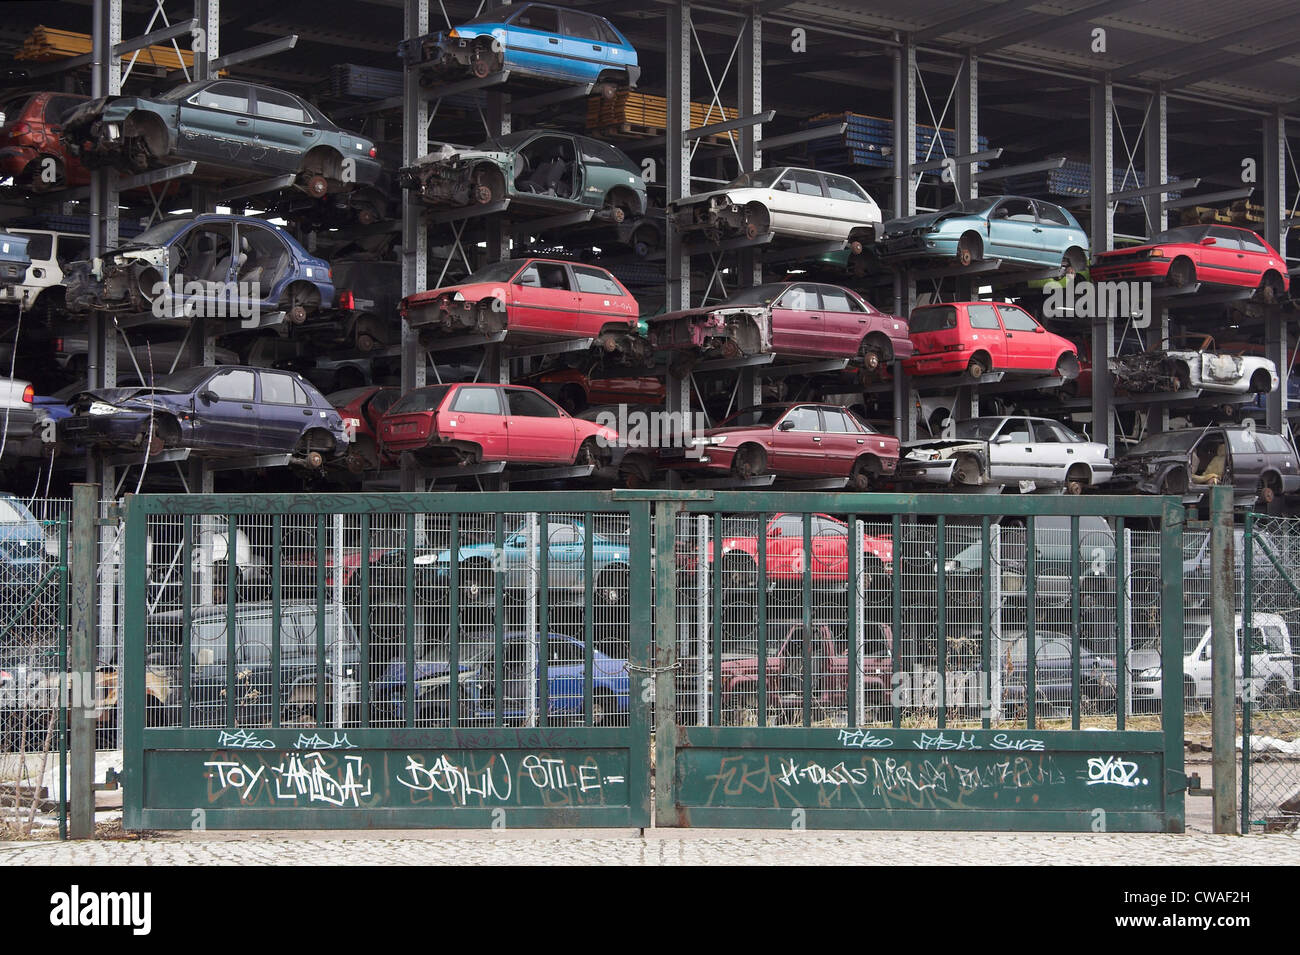 Car Parts Icon Stock Photos & Car Parts Icon Stock Images - Alamy